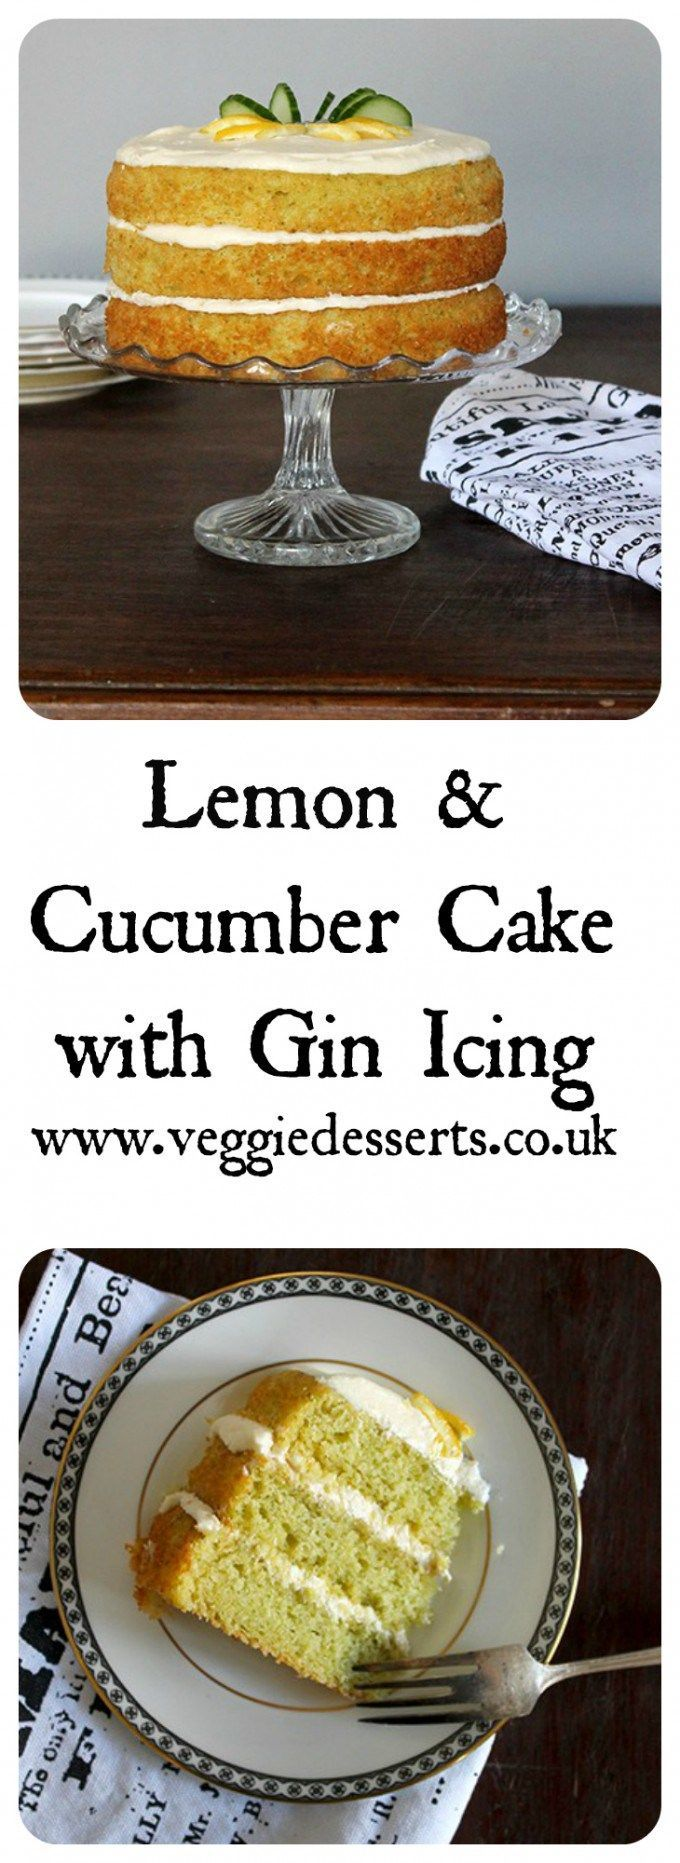 Lemon and Cucumber Cake with Gin Icing | Veggie Desserts Blog by Kate Hackworthy    This delicate green cucumber cake tastes like a lemon sponge with a subtle, refreshing flavour from the cucumber. It's a summery cake and I've topped it with a gin icing.